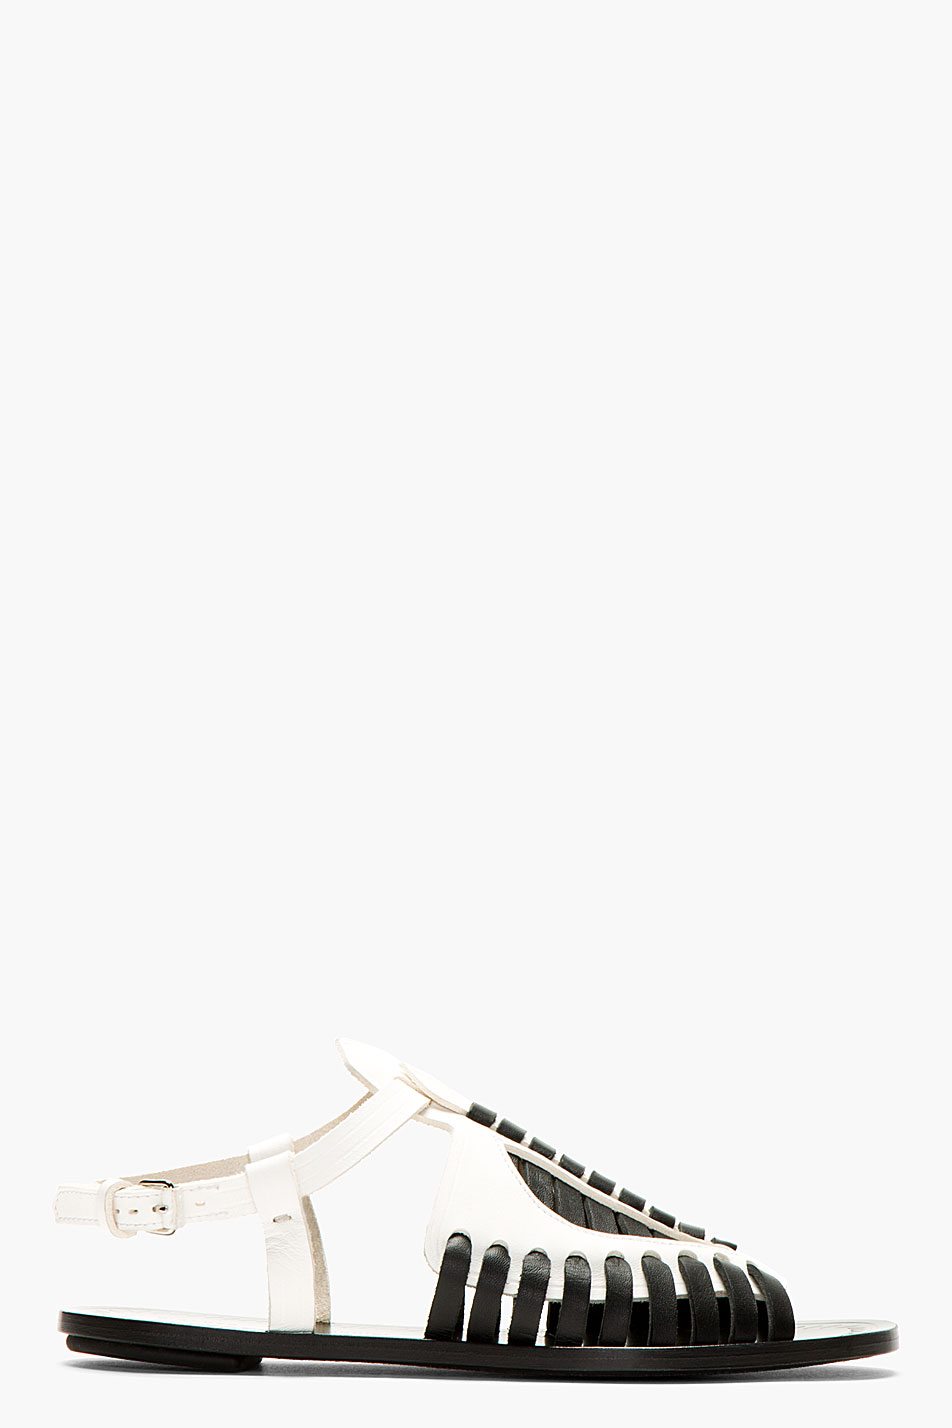 Proenza schouler black and white woven leather flat sandals